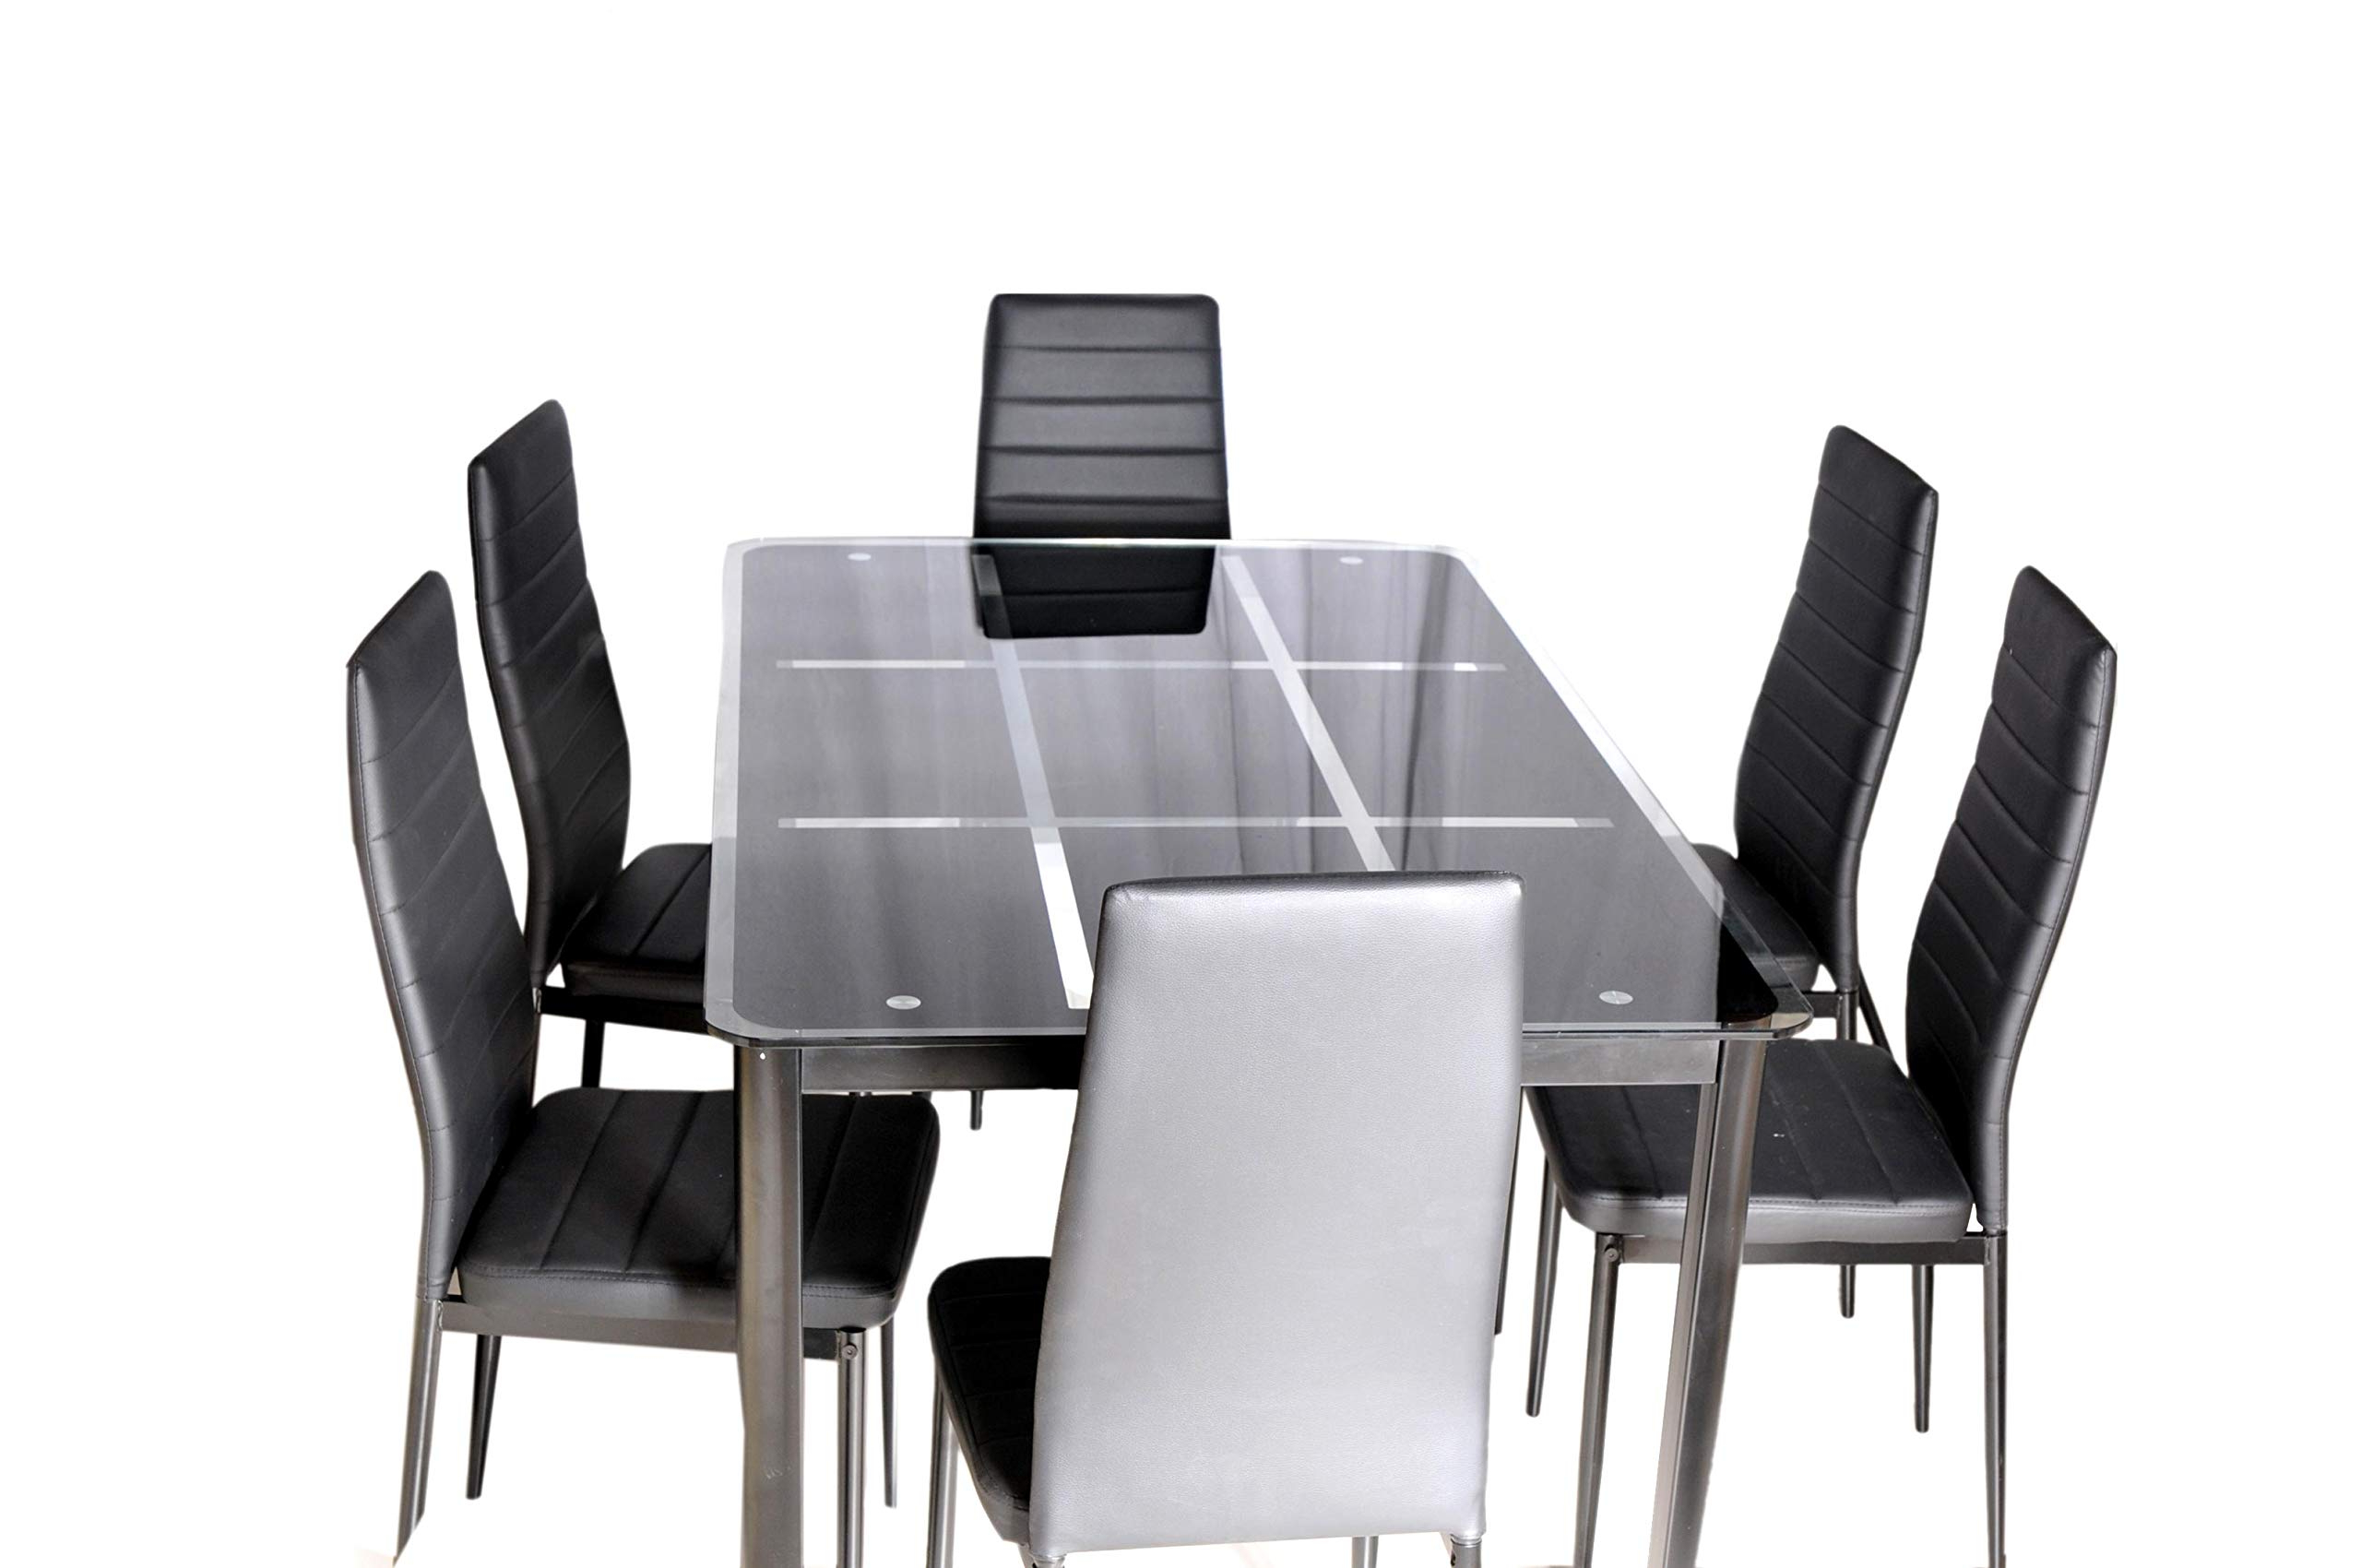 Zena Metal And Glass Dining Table Set, With 6 Chairs, Black Pertaining To Trendy Glass Dining Tables With Metal Legs (View 22 of 30)